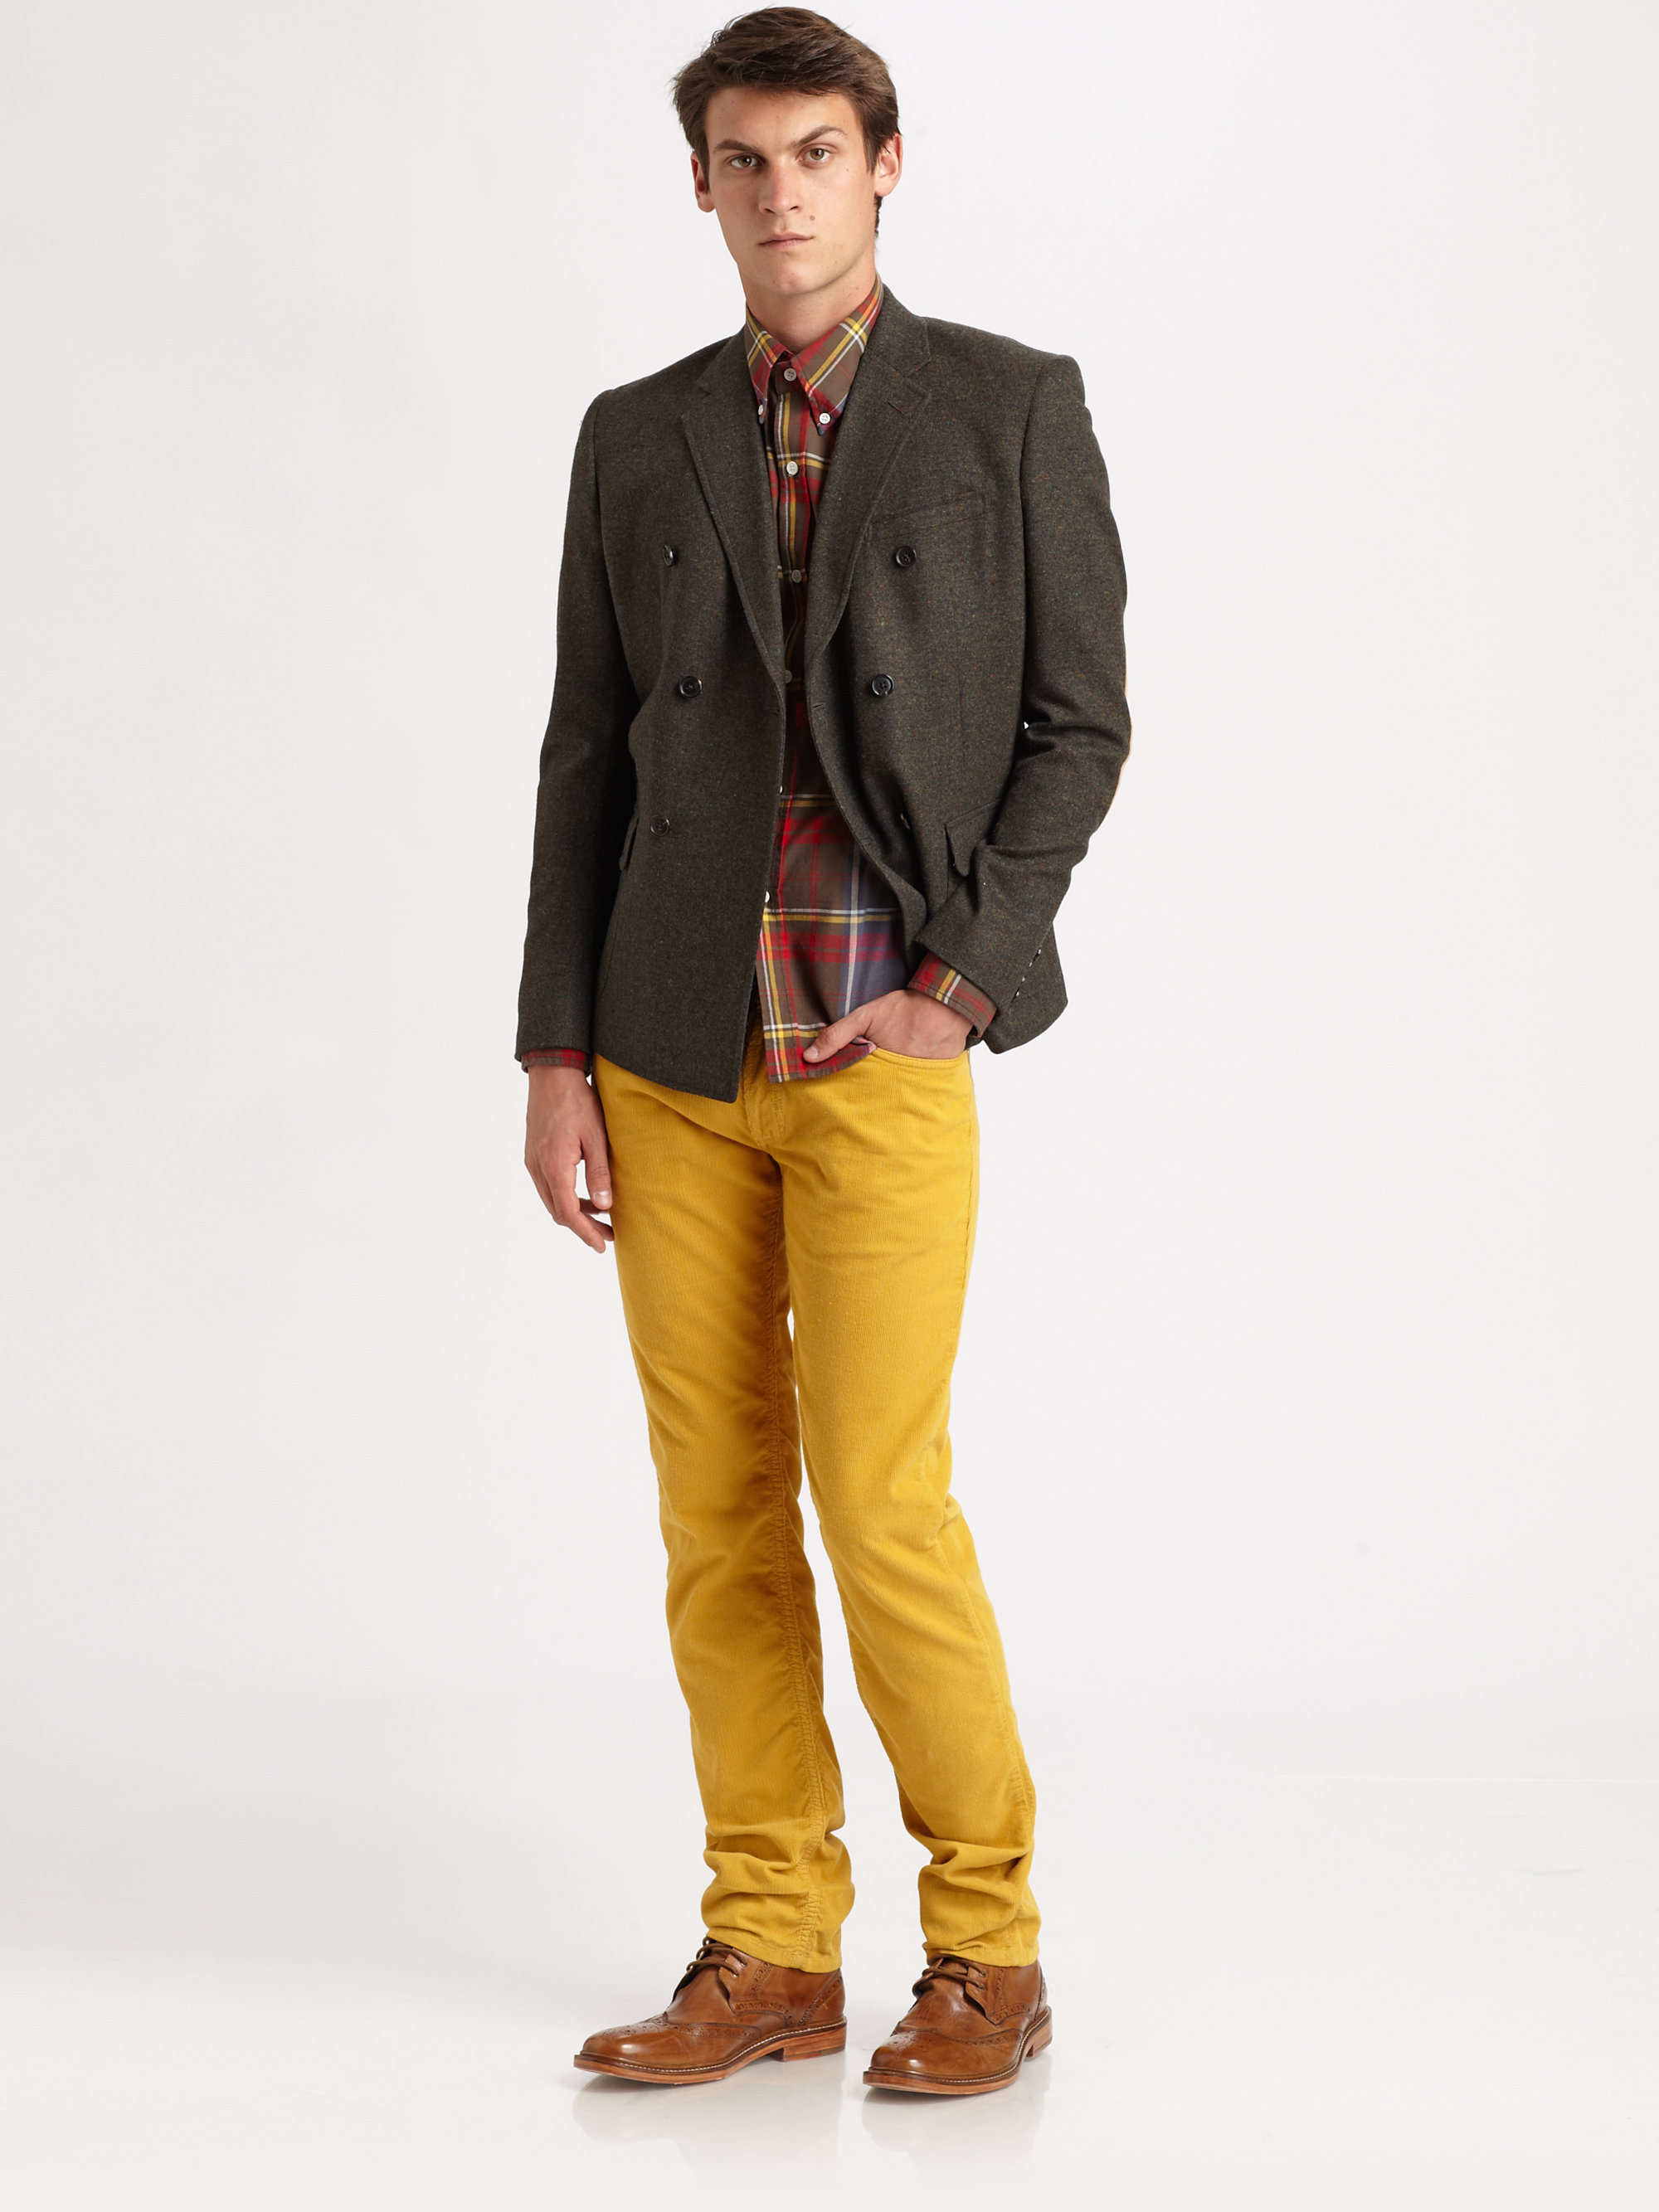 Band of outsiders Corduroy Pants in Yellow for Men | Lyst